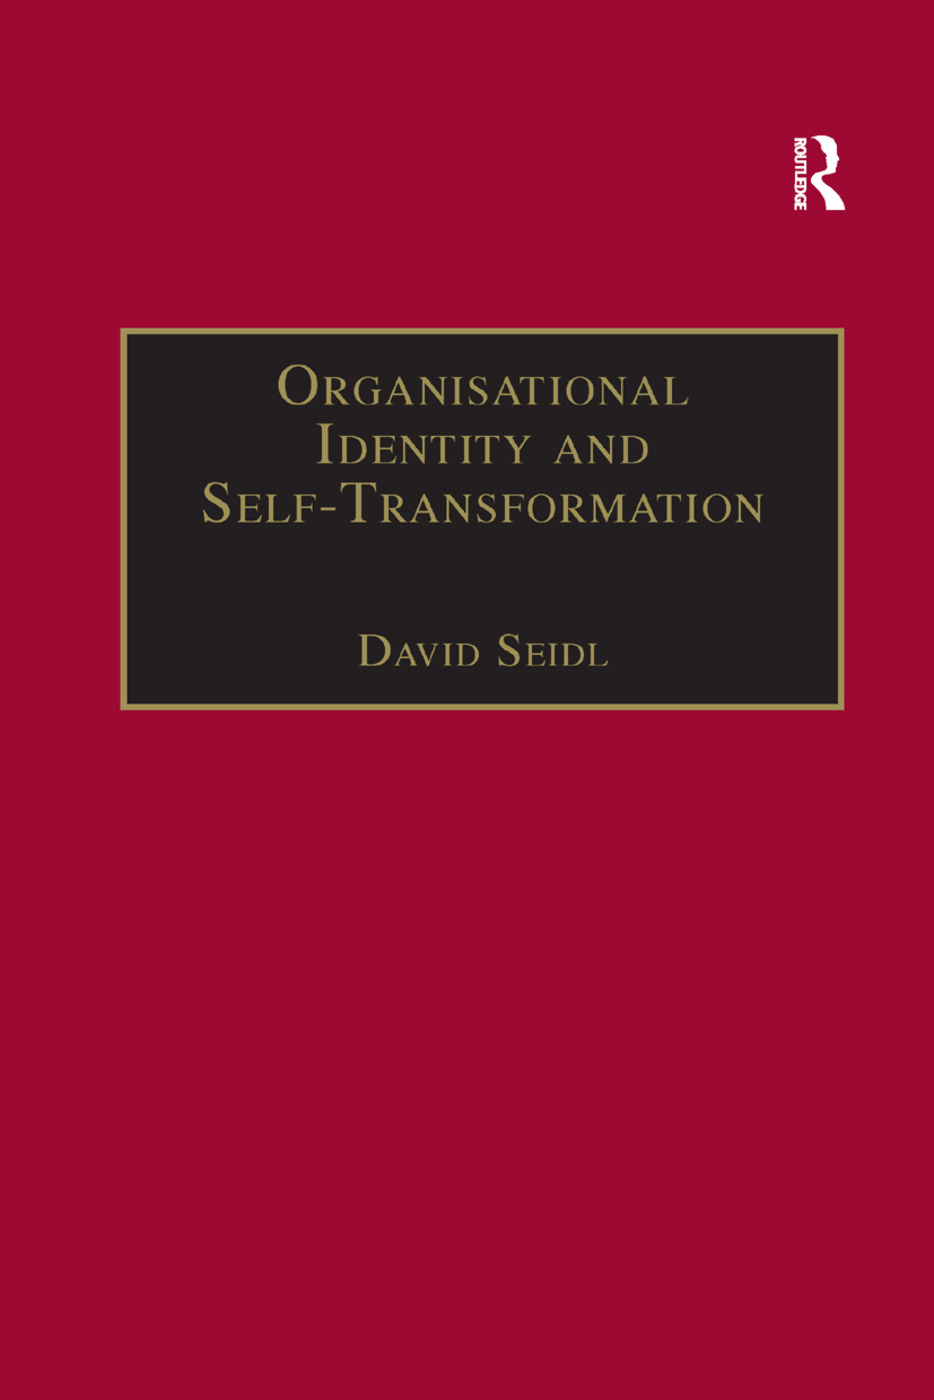 Organisational Identity and Self-Transformation: An Autopoietic Perspective book cover